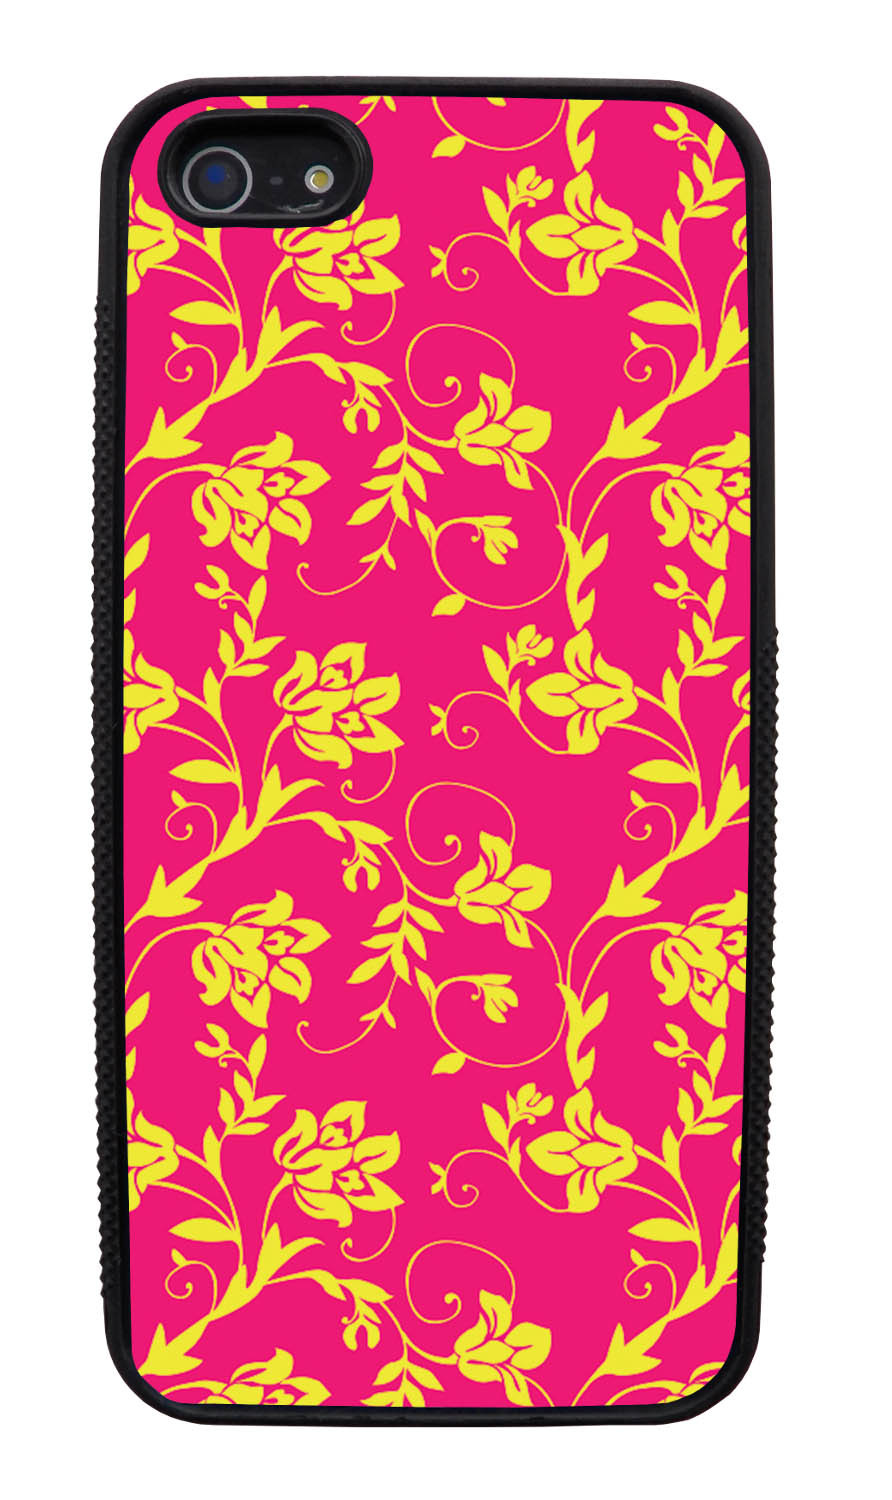 Apple iPhone 5 / 5S Flower Case - Yellow on Hot Pink - Stencil Cutout - Black Slim Rubber Case